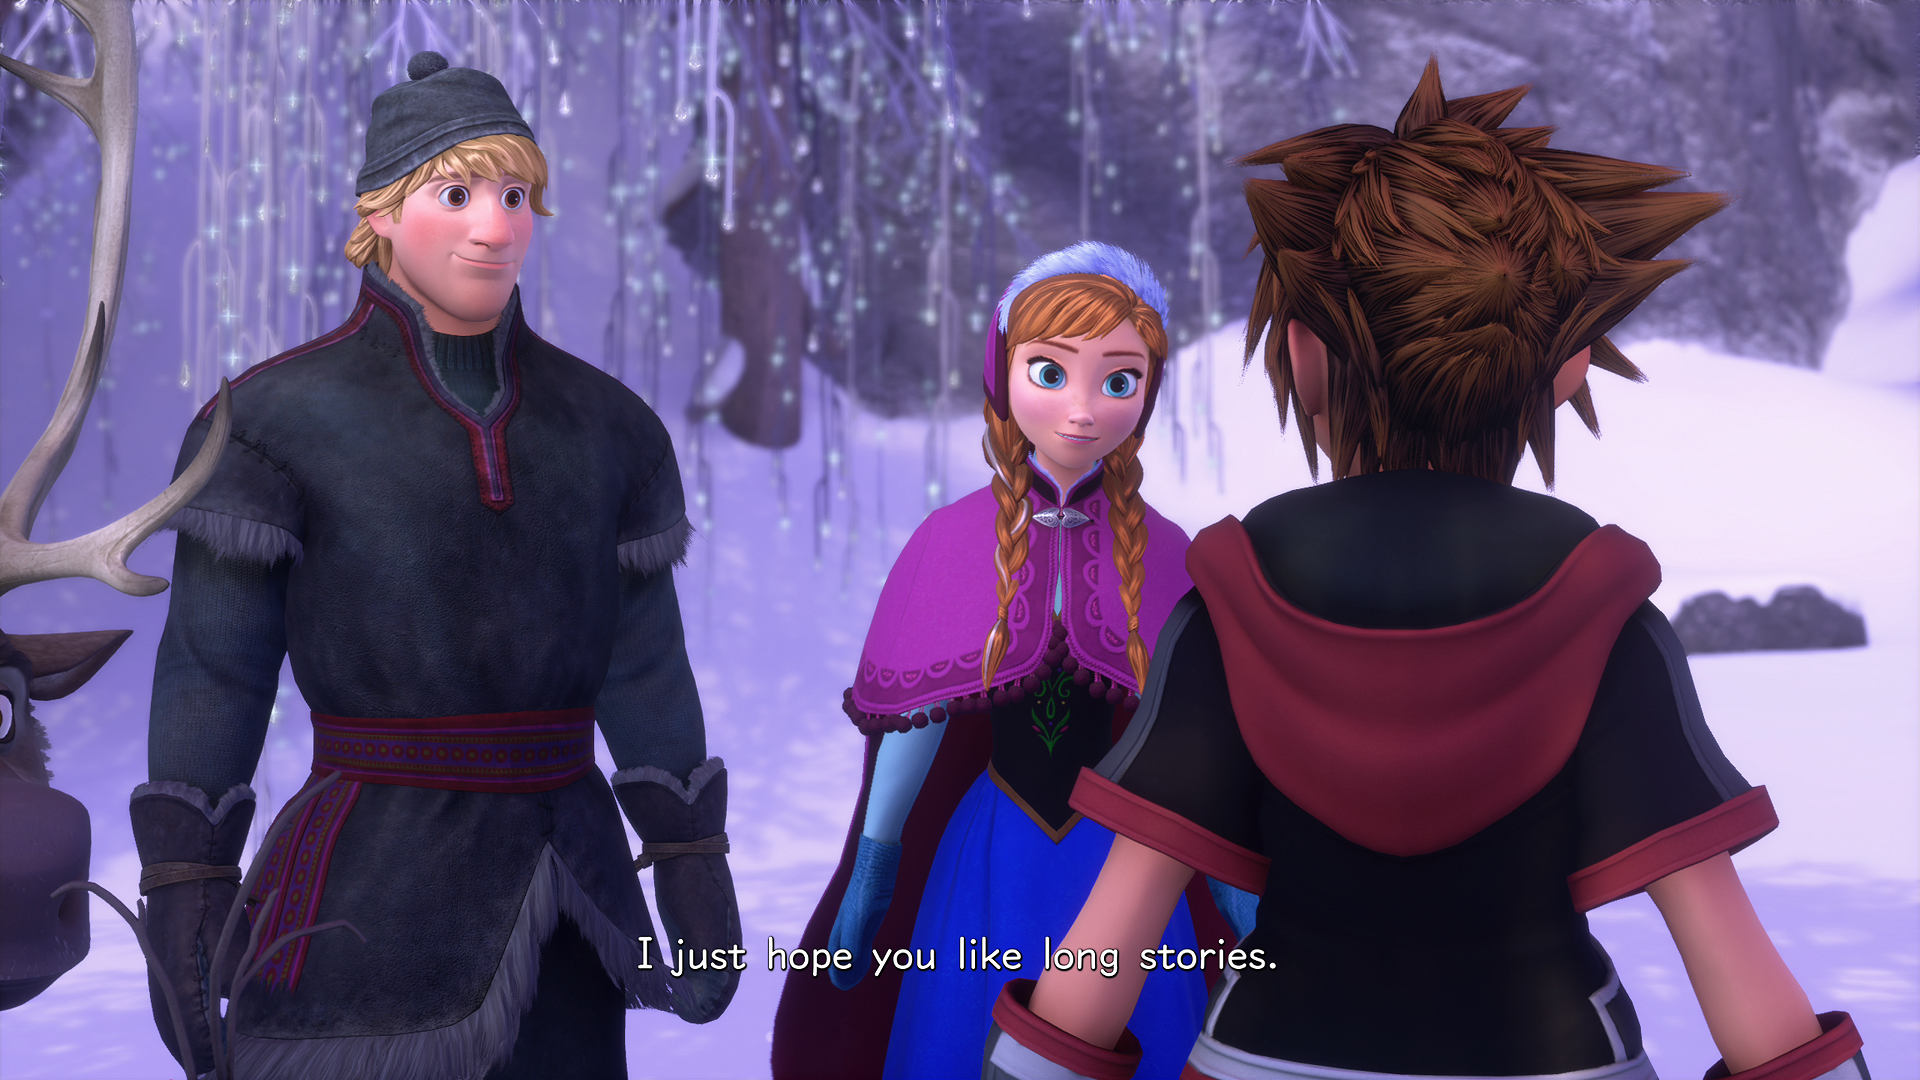 Kingdom Hearts III Review - The End Has Finally Come